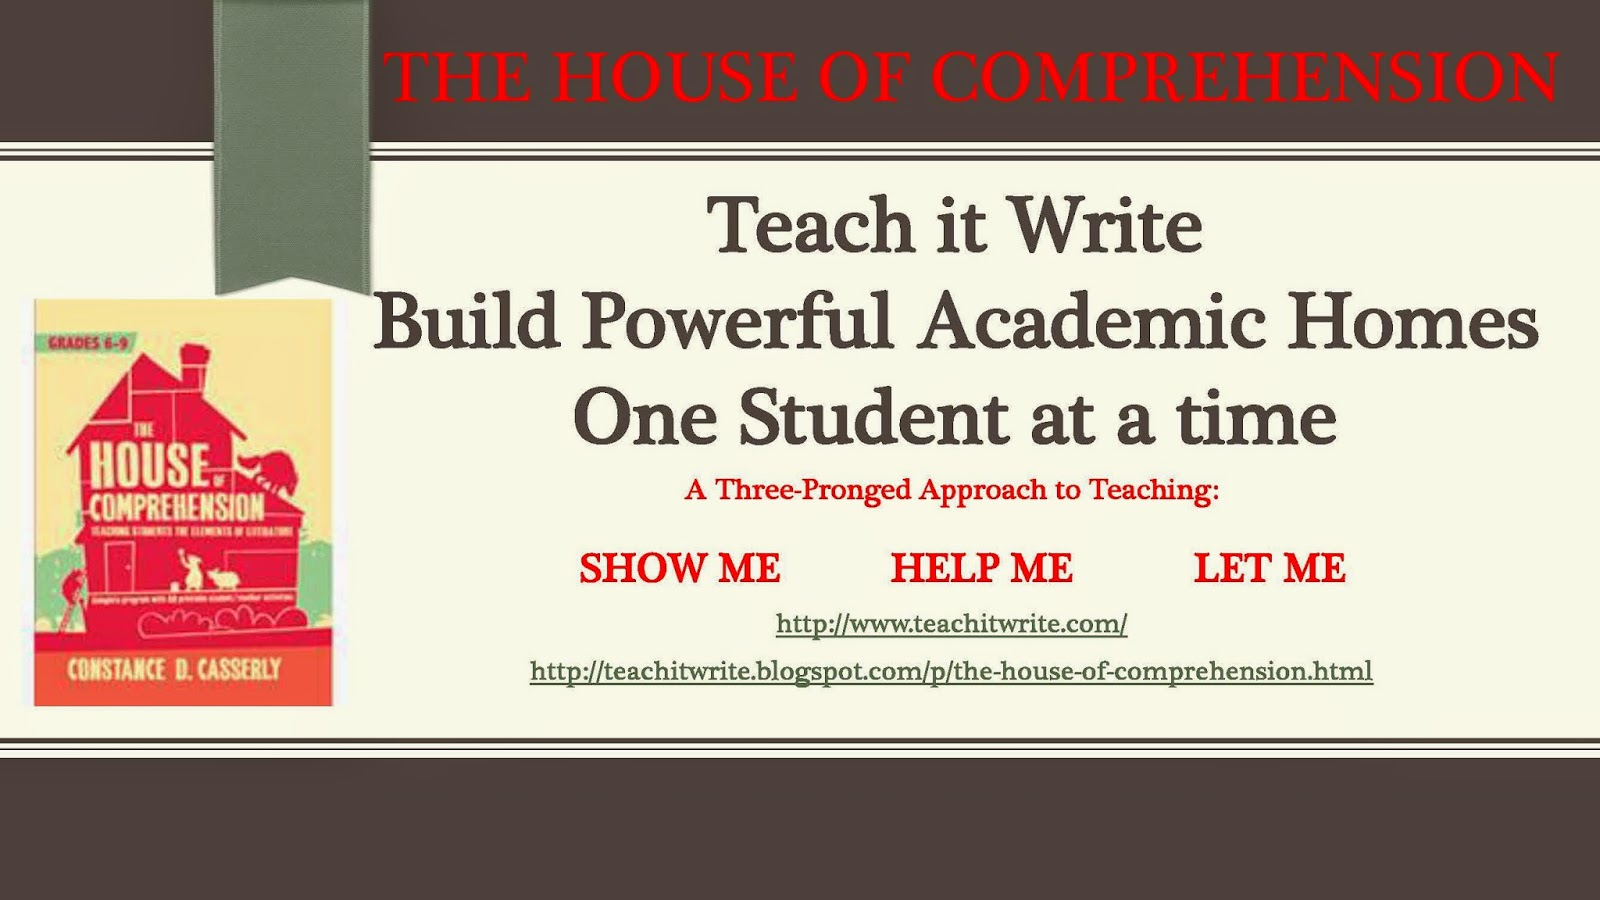 The House of Comprehension poster